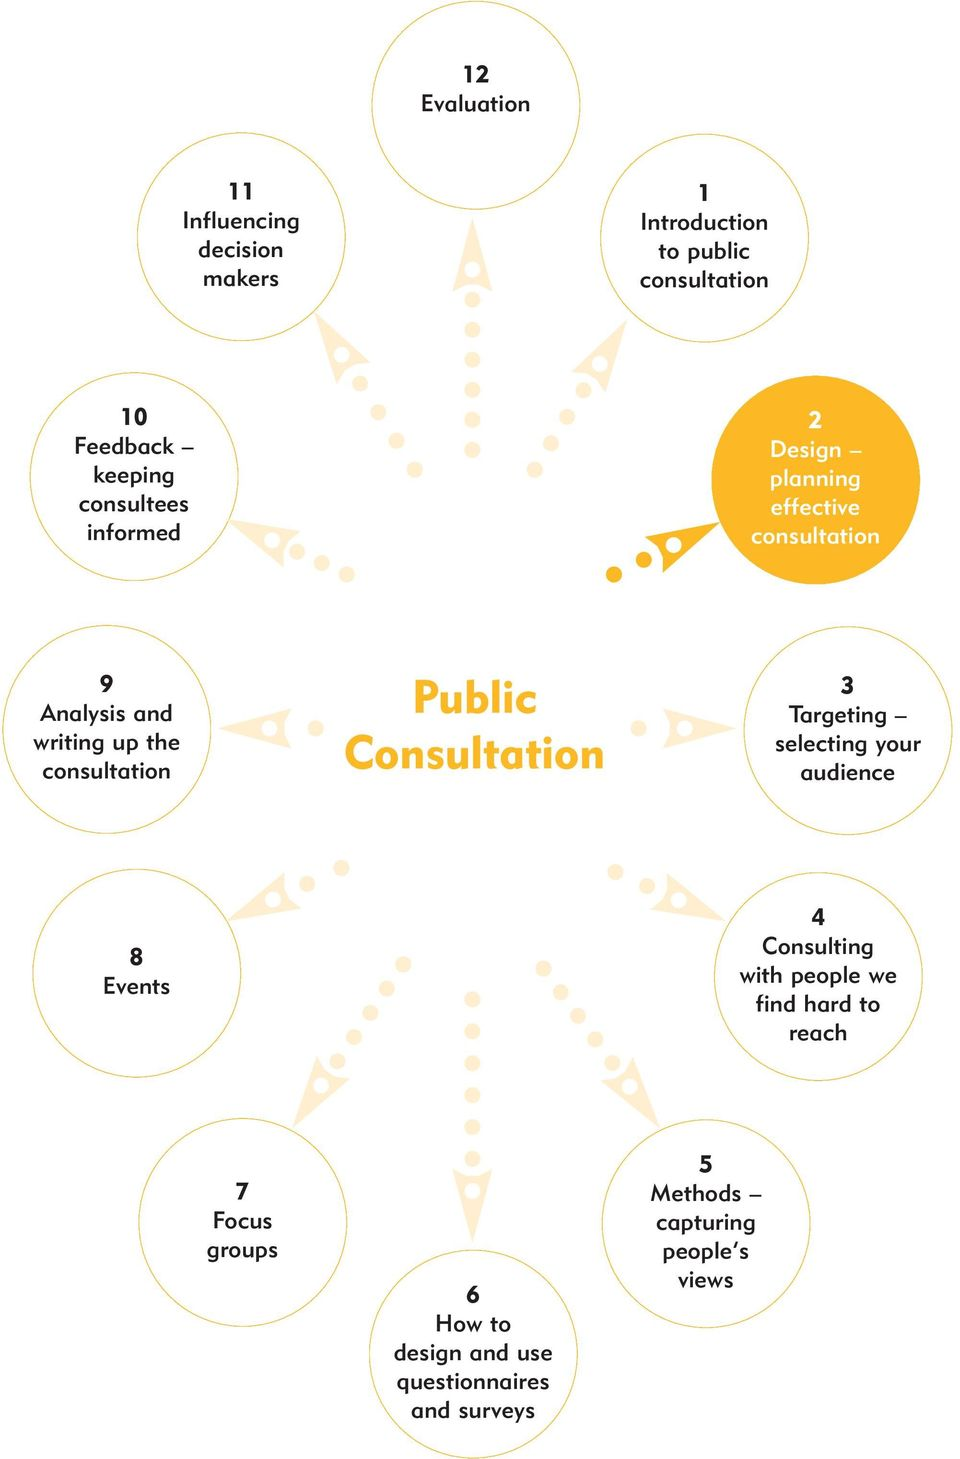 Public Consultation 3 Targeting selecting your audience 8 Events 4 Consulting with people we find hard